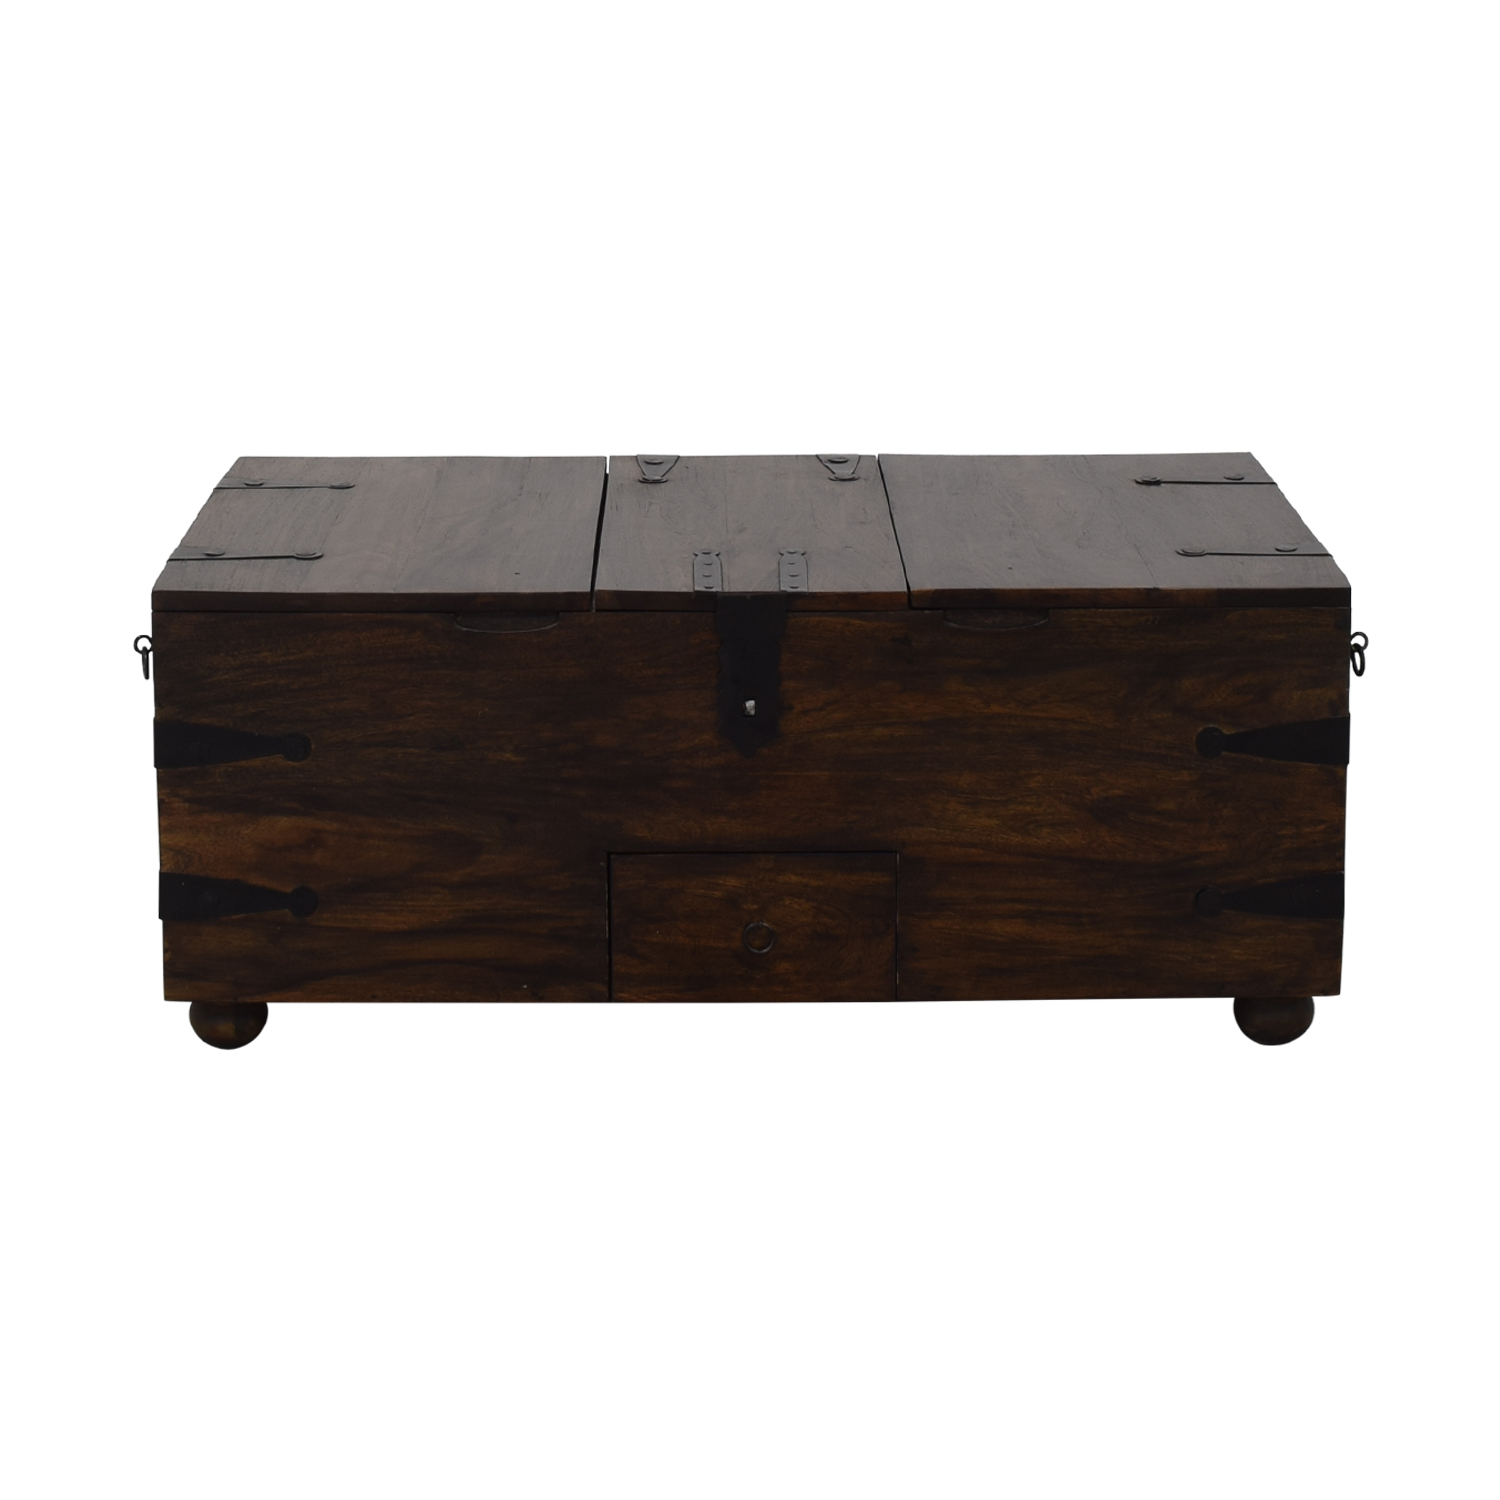 Crate & Barrel Crate & Barrel Rectangular Trunk or Coffee Table